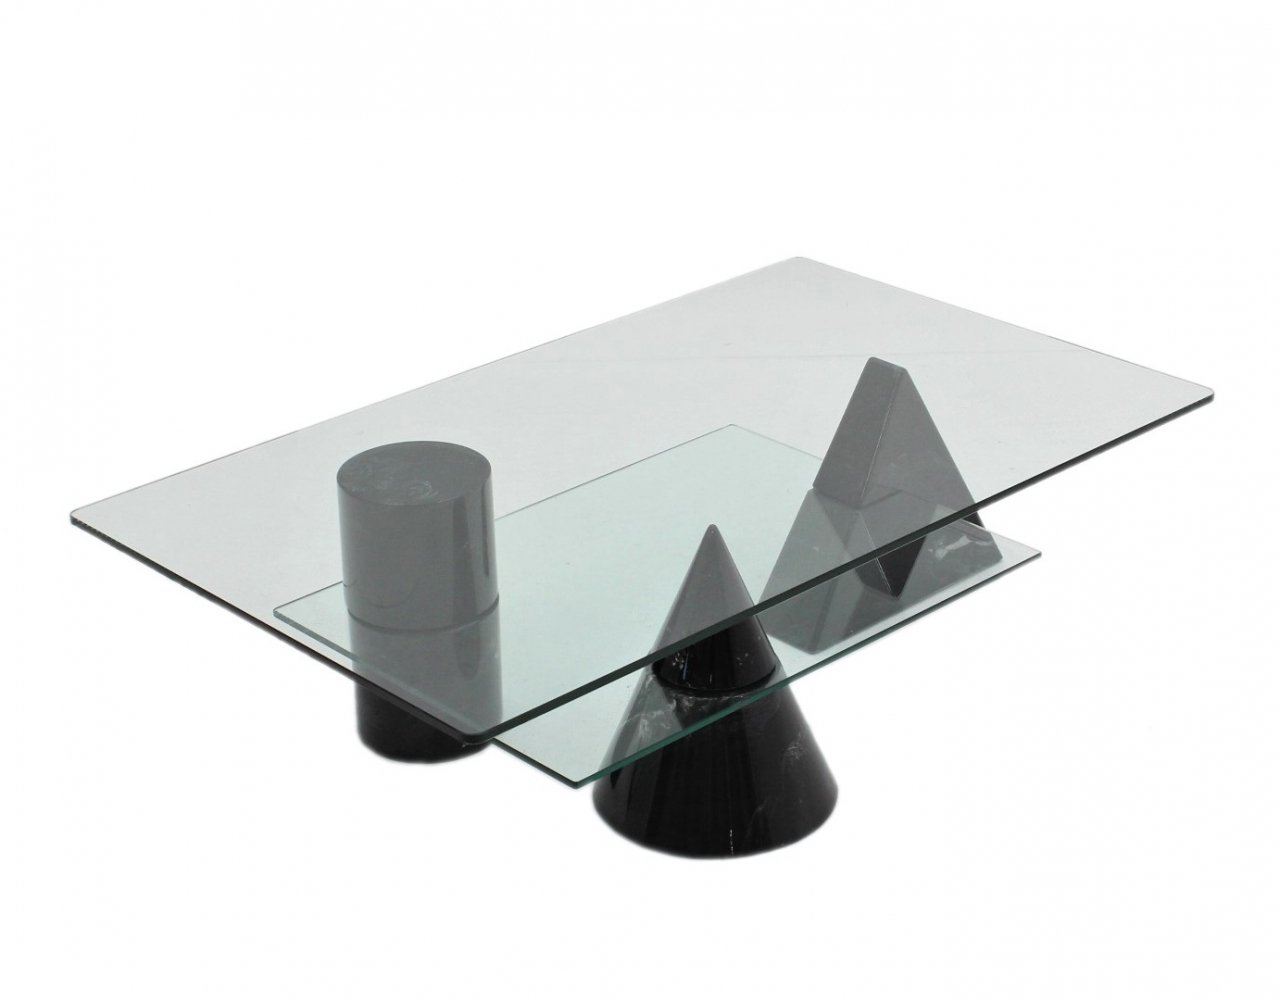 Geometric coffee table by Martinelli Luce, 1970s